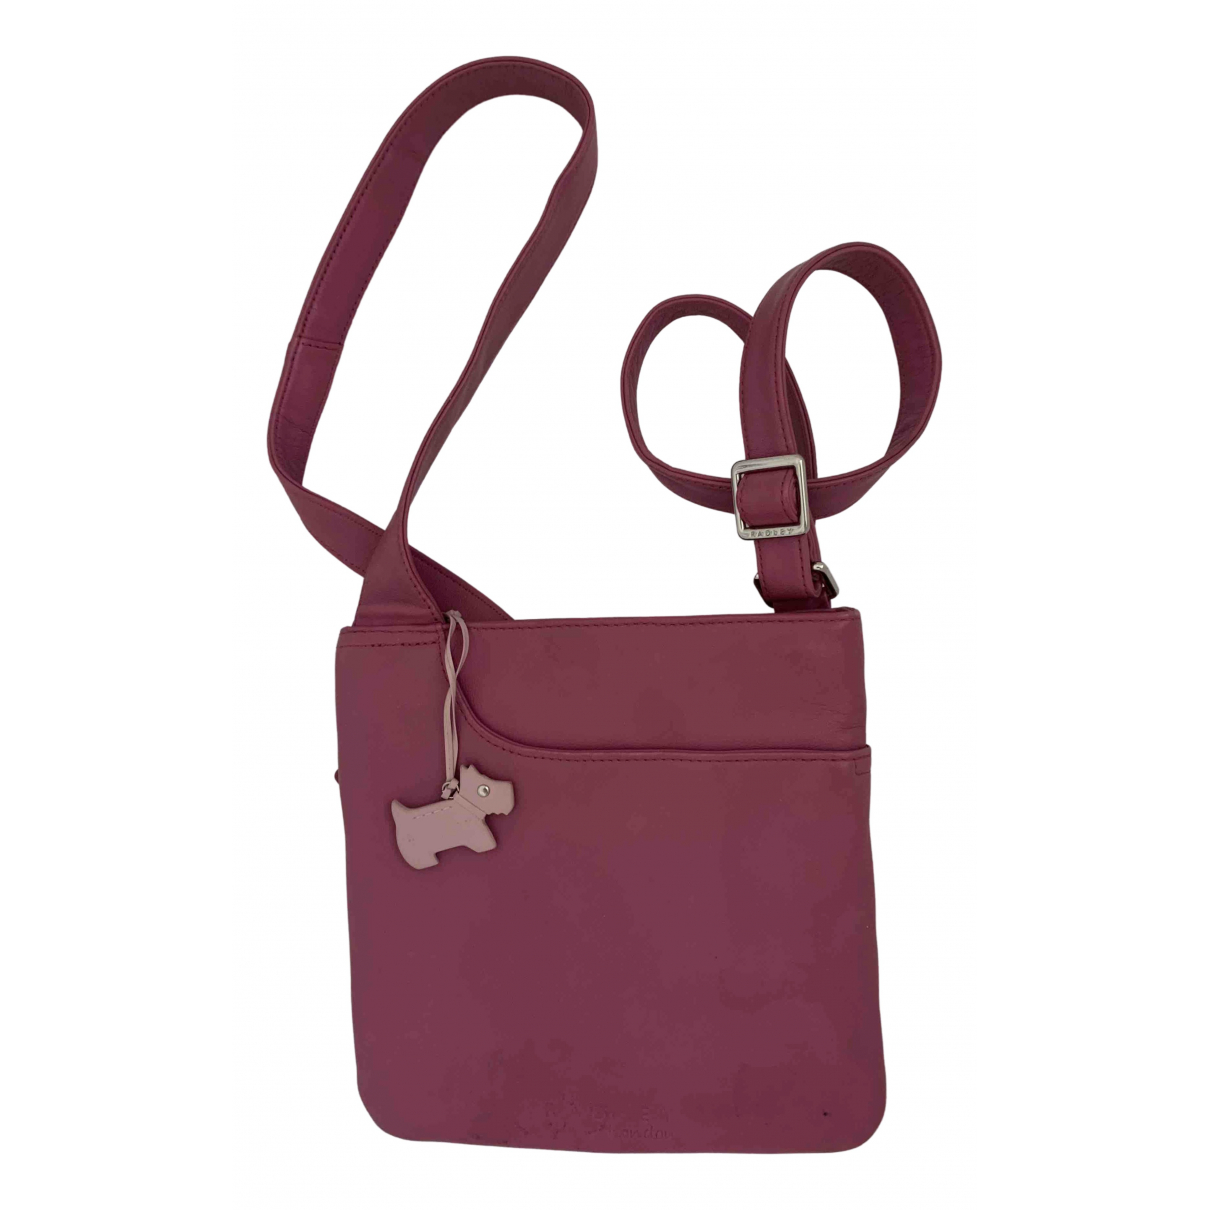 Radley London \N Pink Leather handbag for Women \N